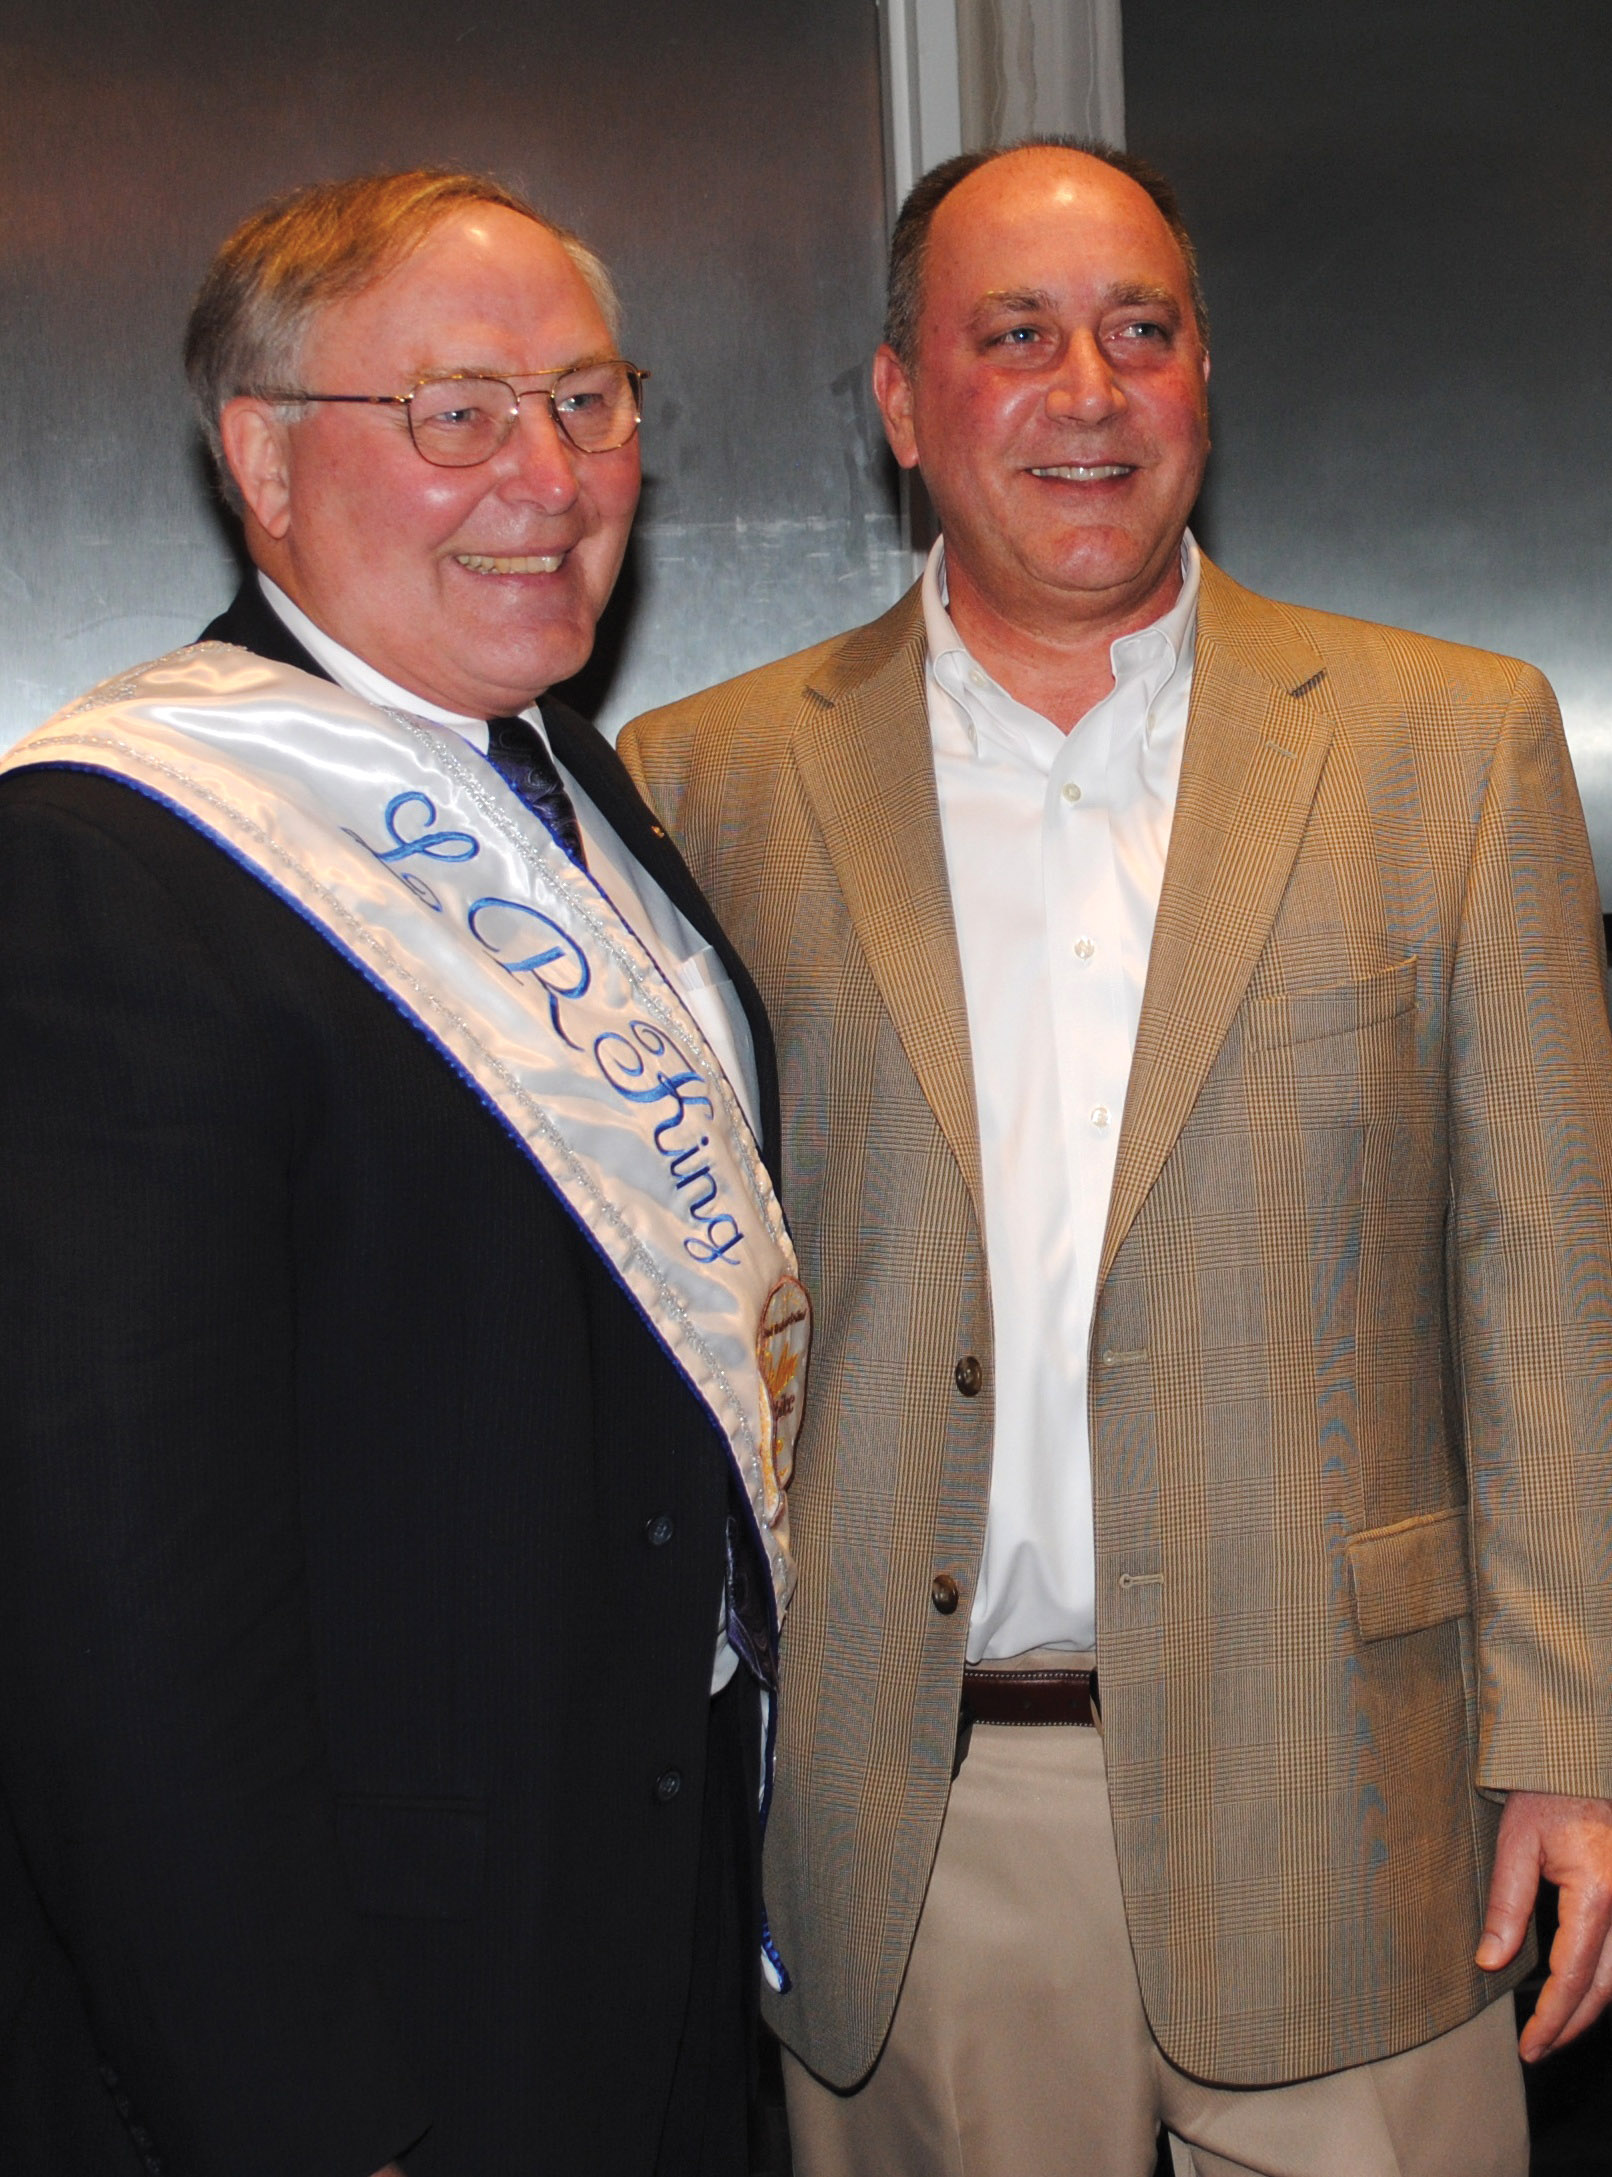 Festival King, Retired Astronaut Jerry Ross, Left, Is Introduced To The  Crowd At